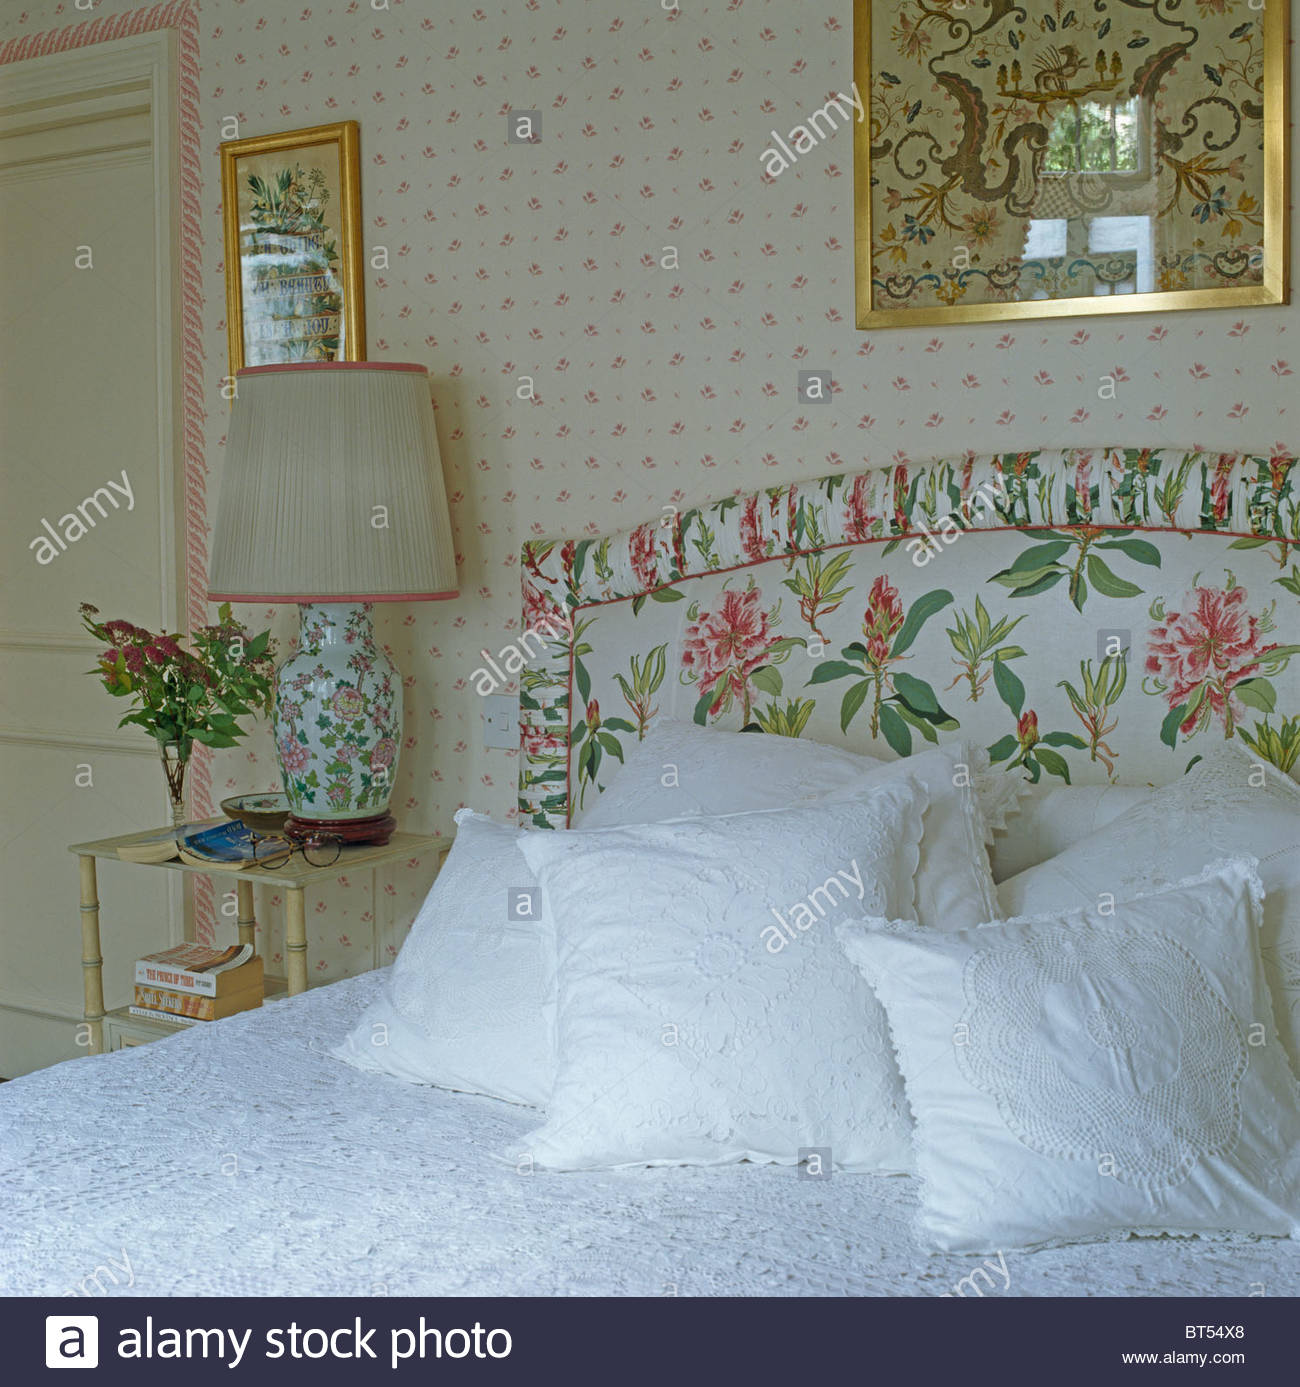 White lace edged cushions on bed with upholstered floral headboard 1300x1387